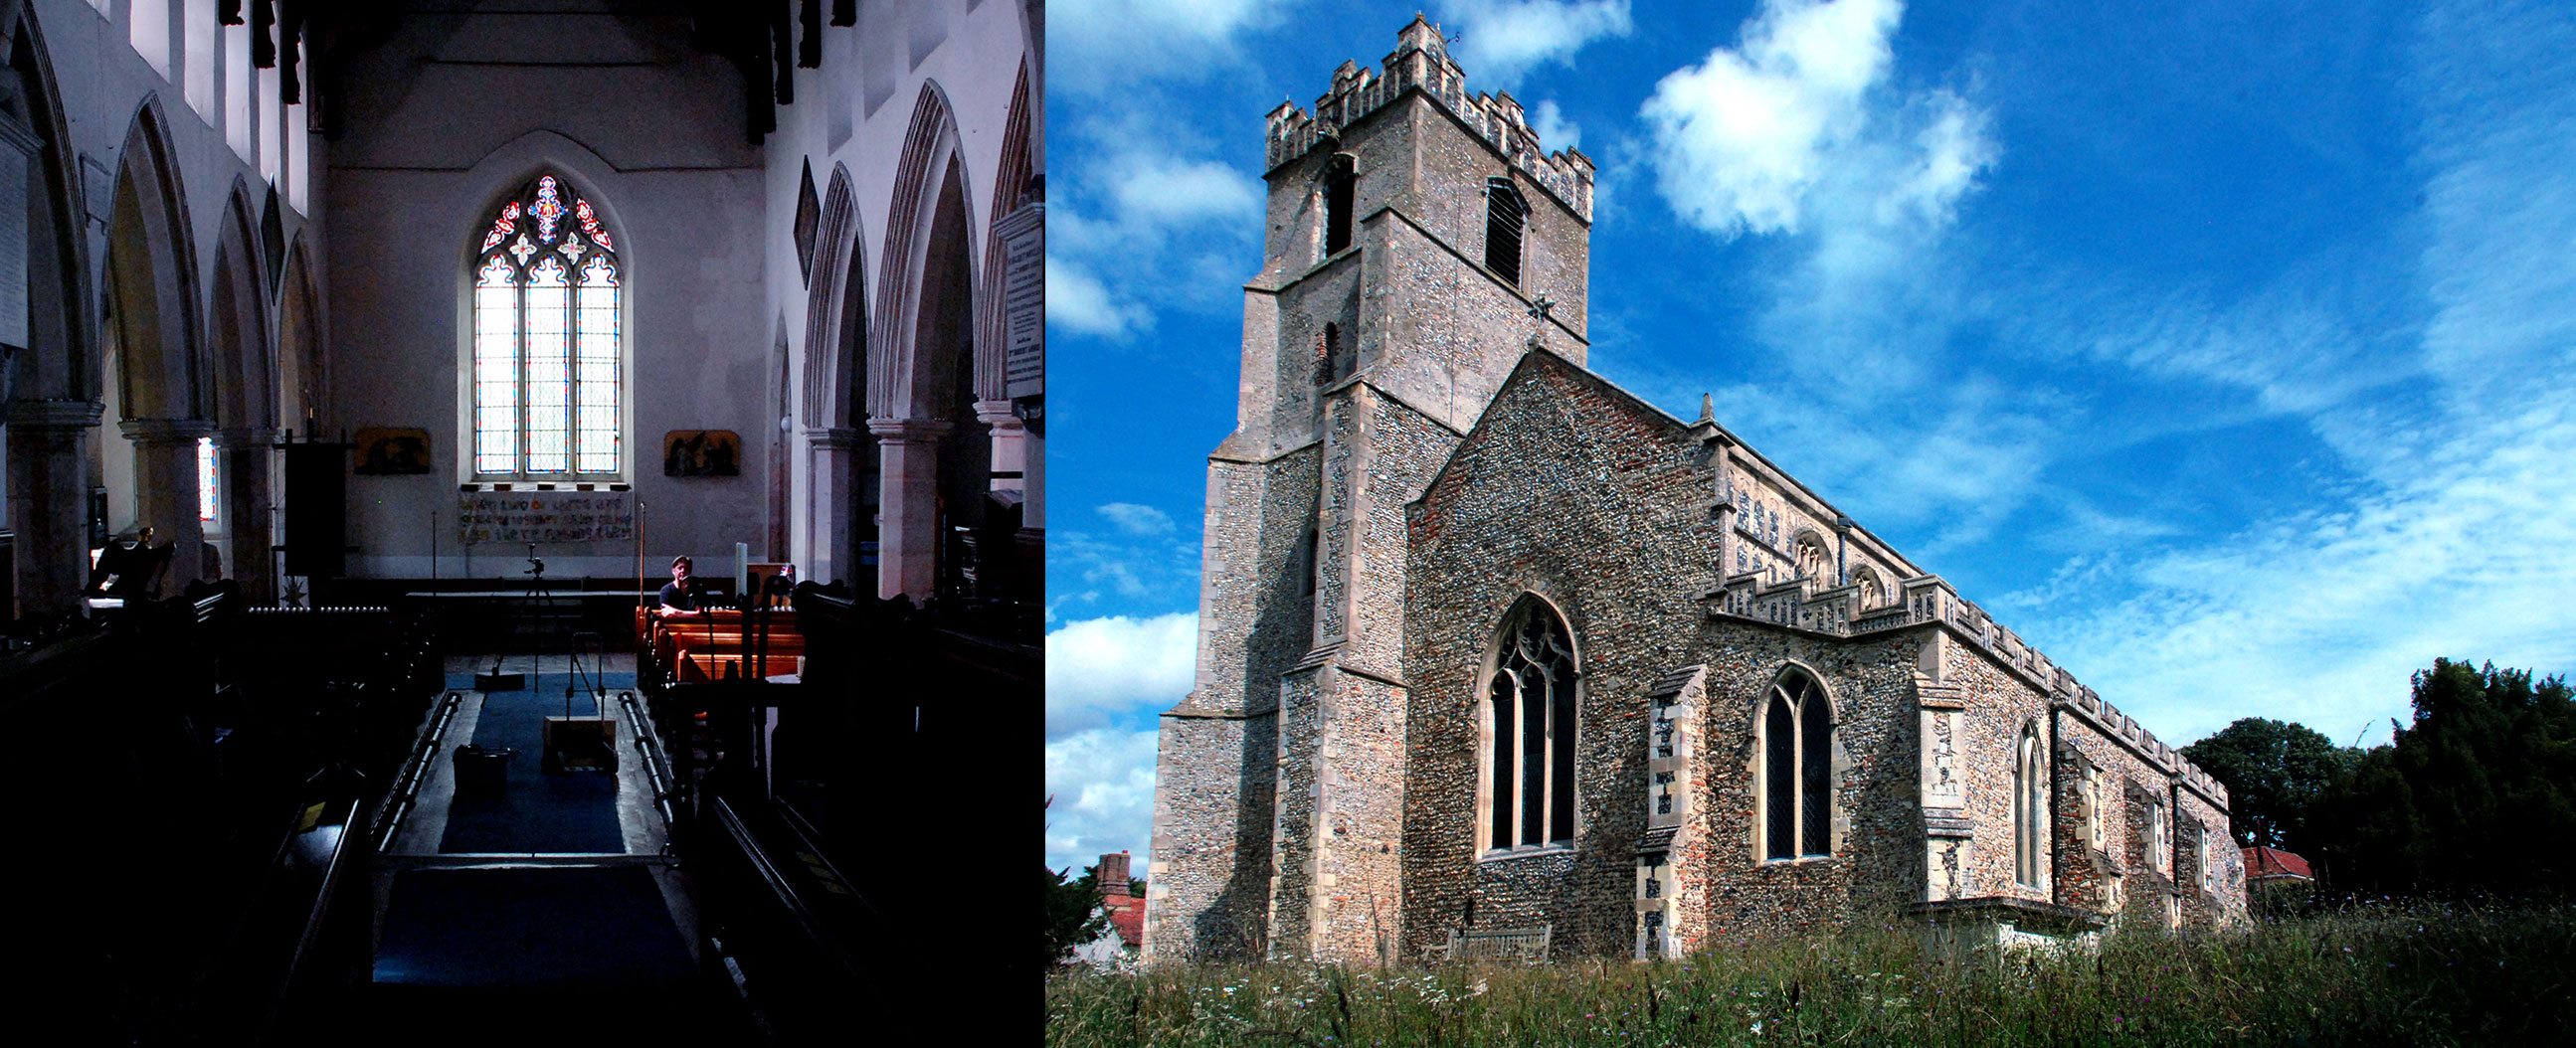 St Marys Church Coddenham England